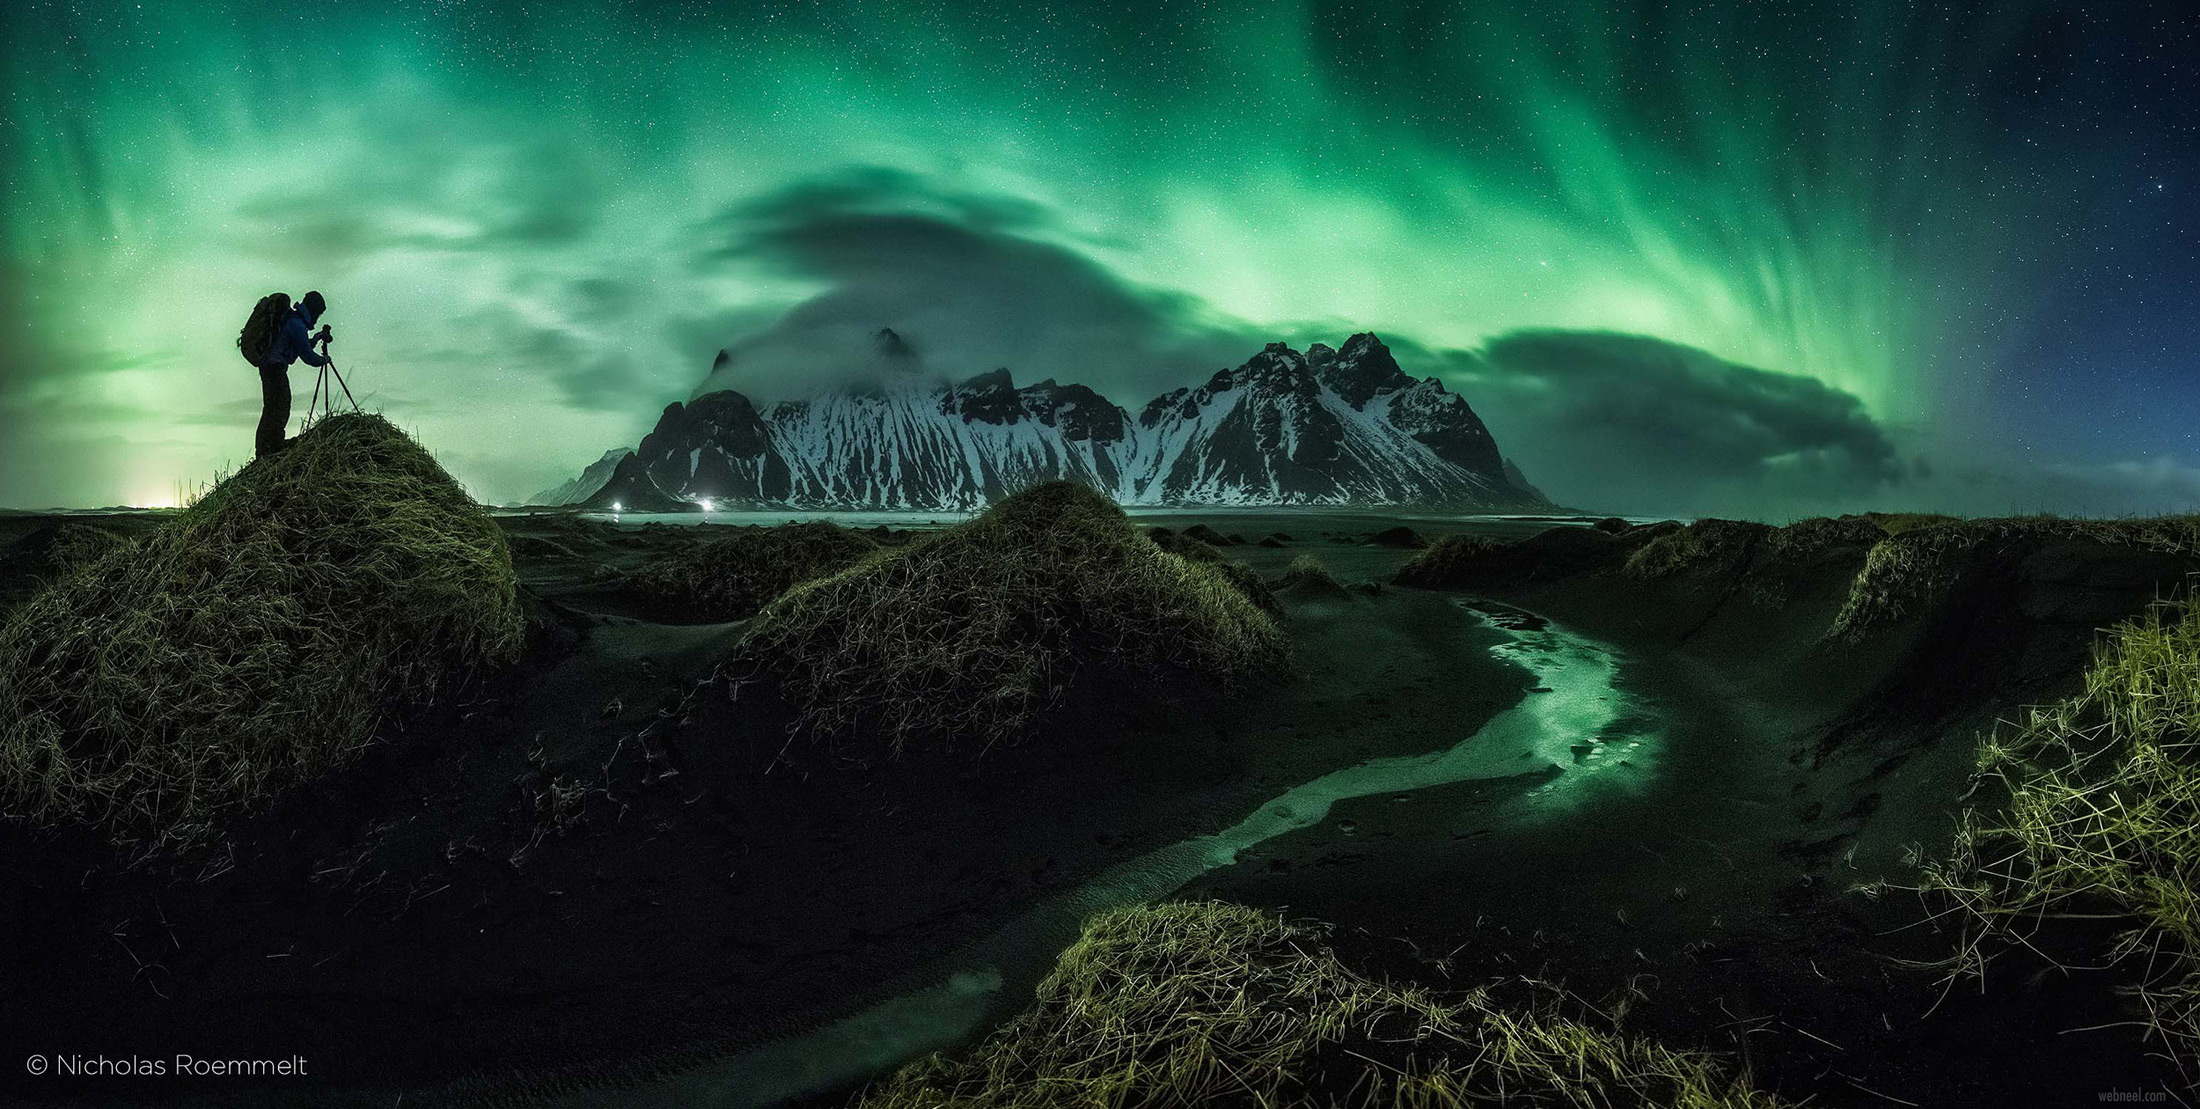 15 Best Panoramic Photography Ideas From Top Photographers